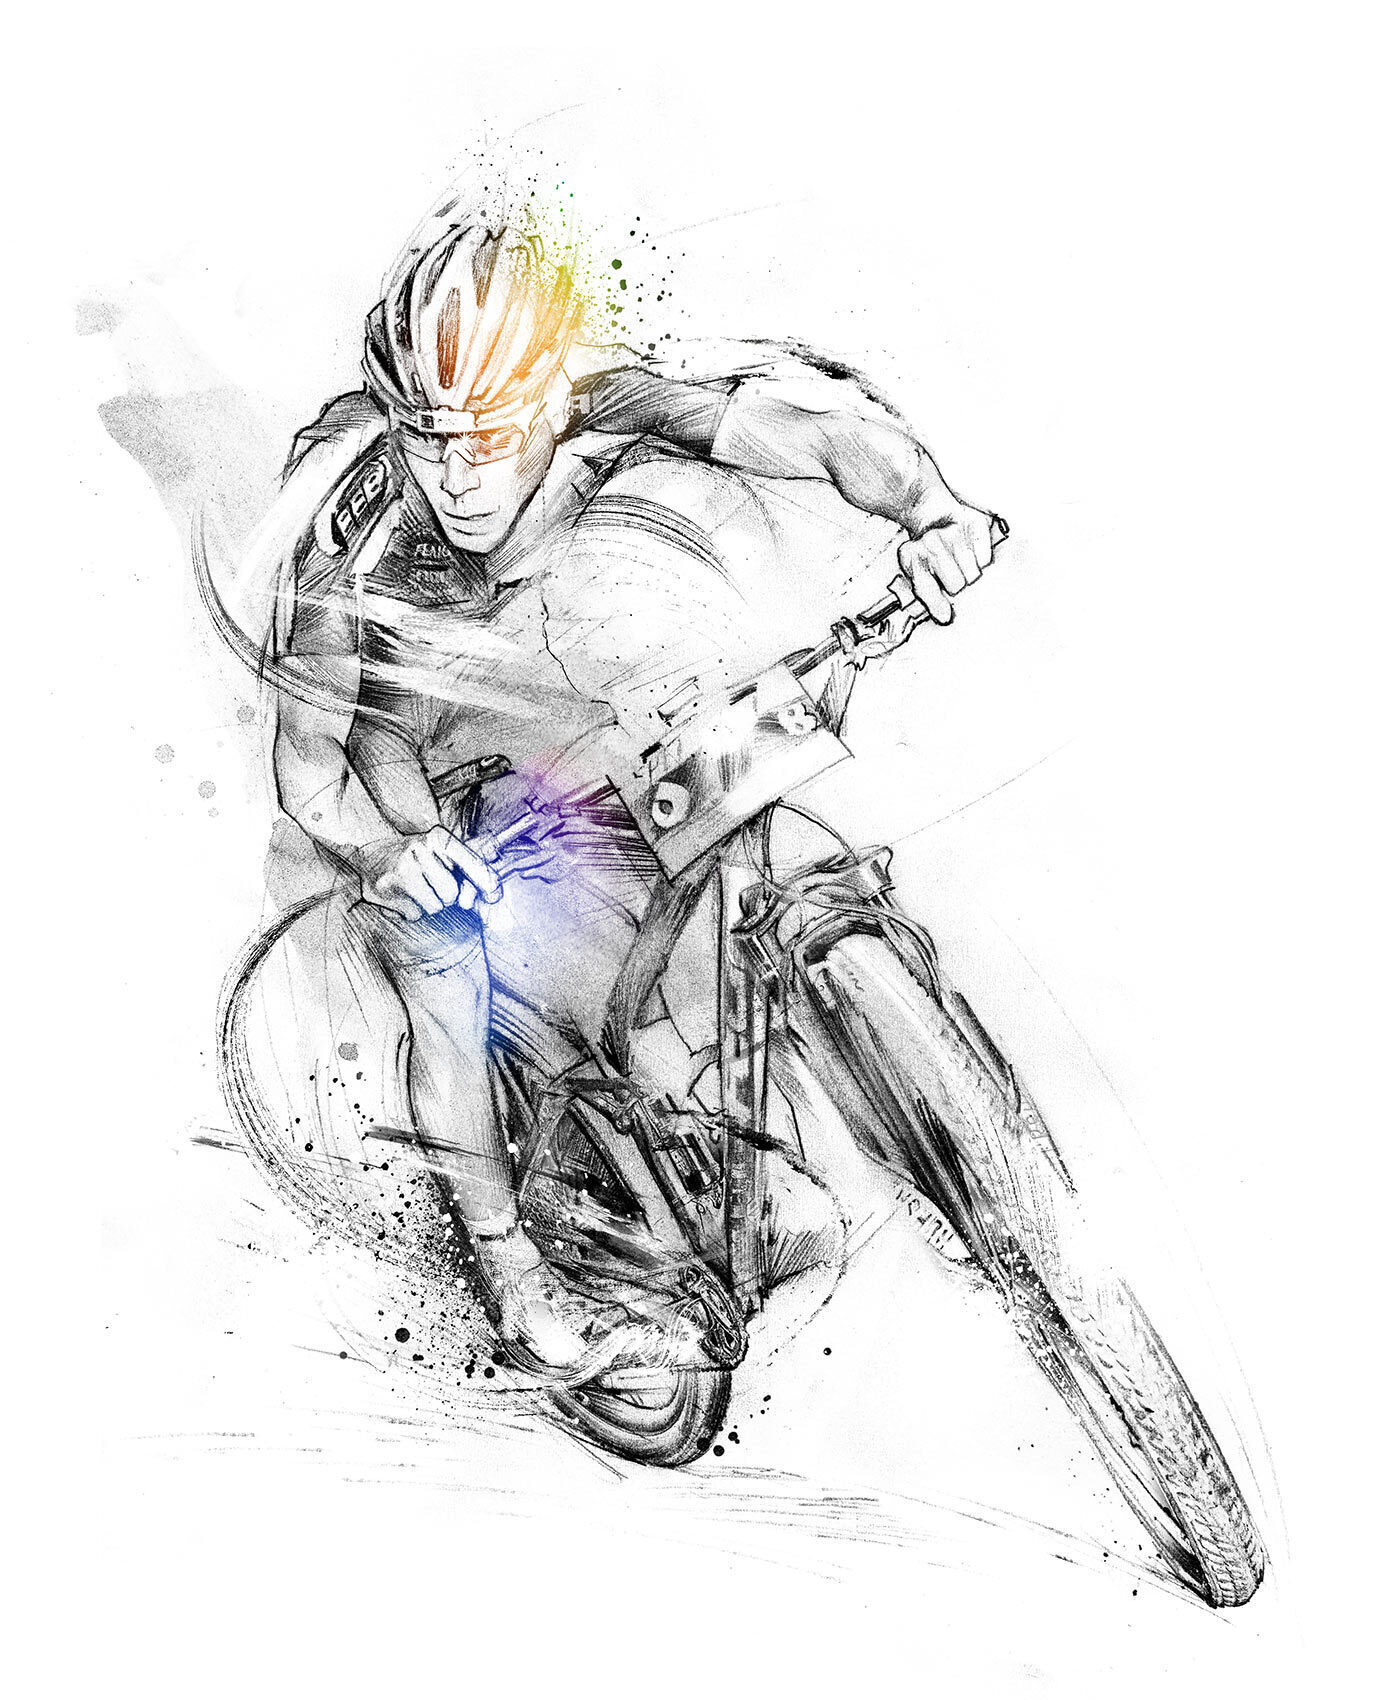 Mountainbike sport illustration - Kornel Illustration | Kornel Stadler portfolio